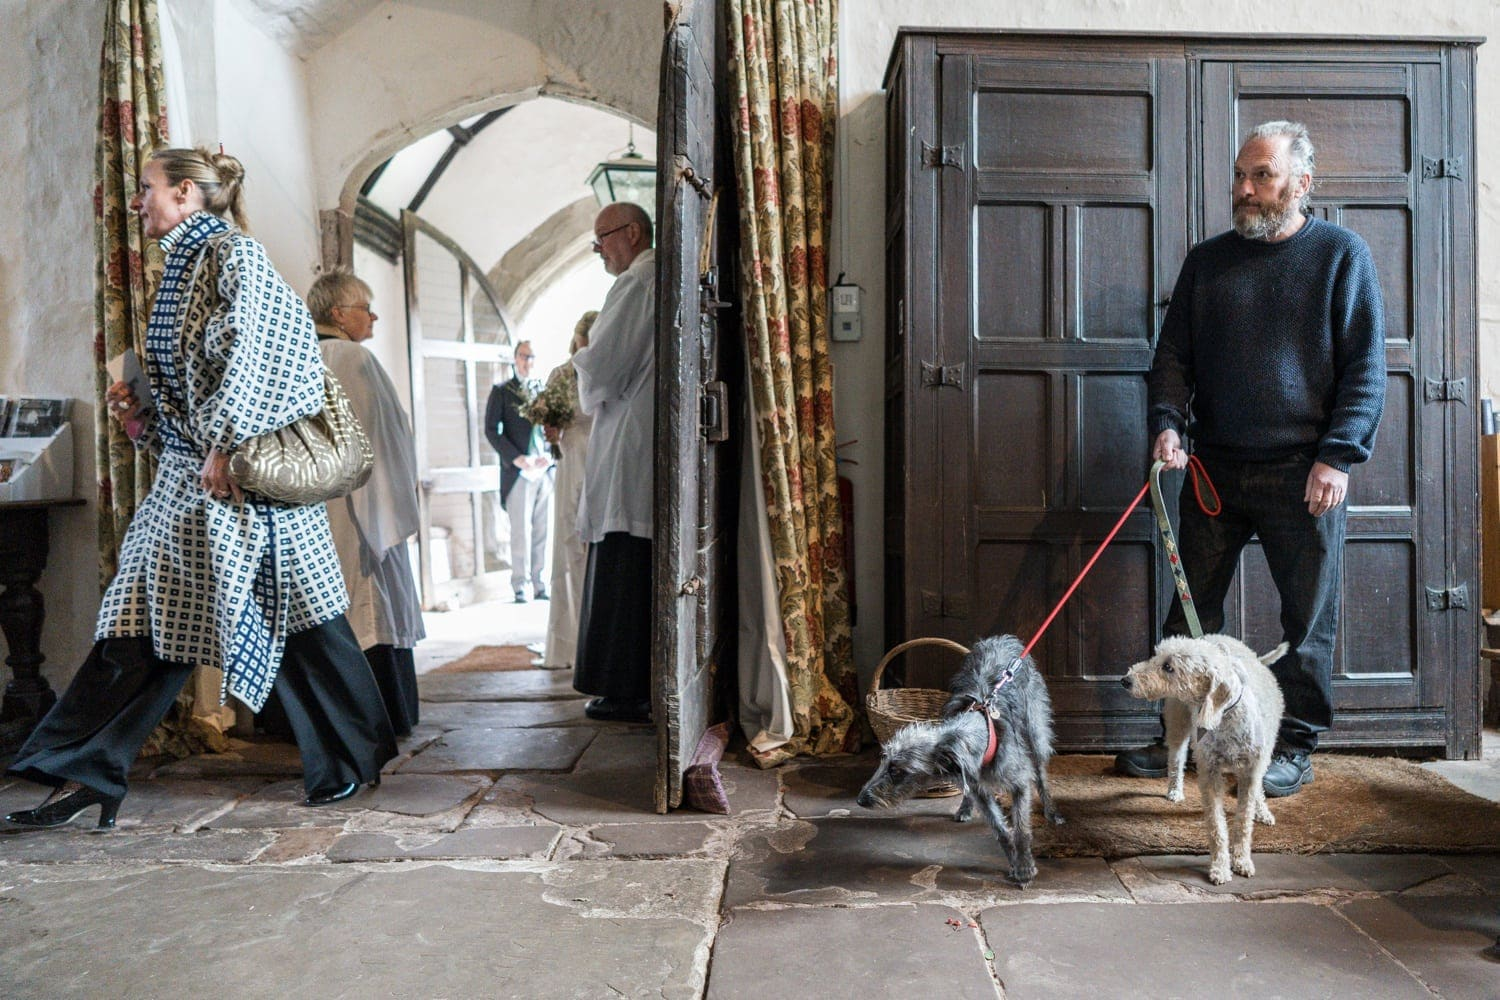 Man holding dogs in Monmouthshire church wedding